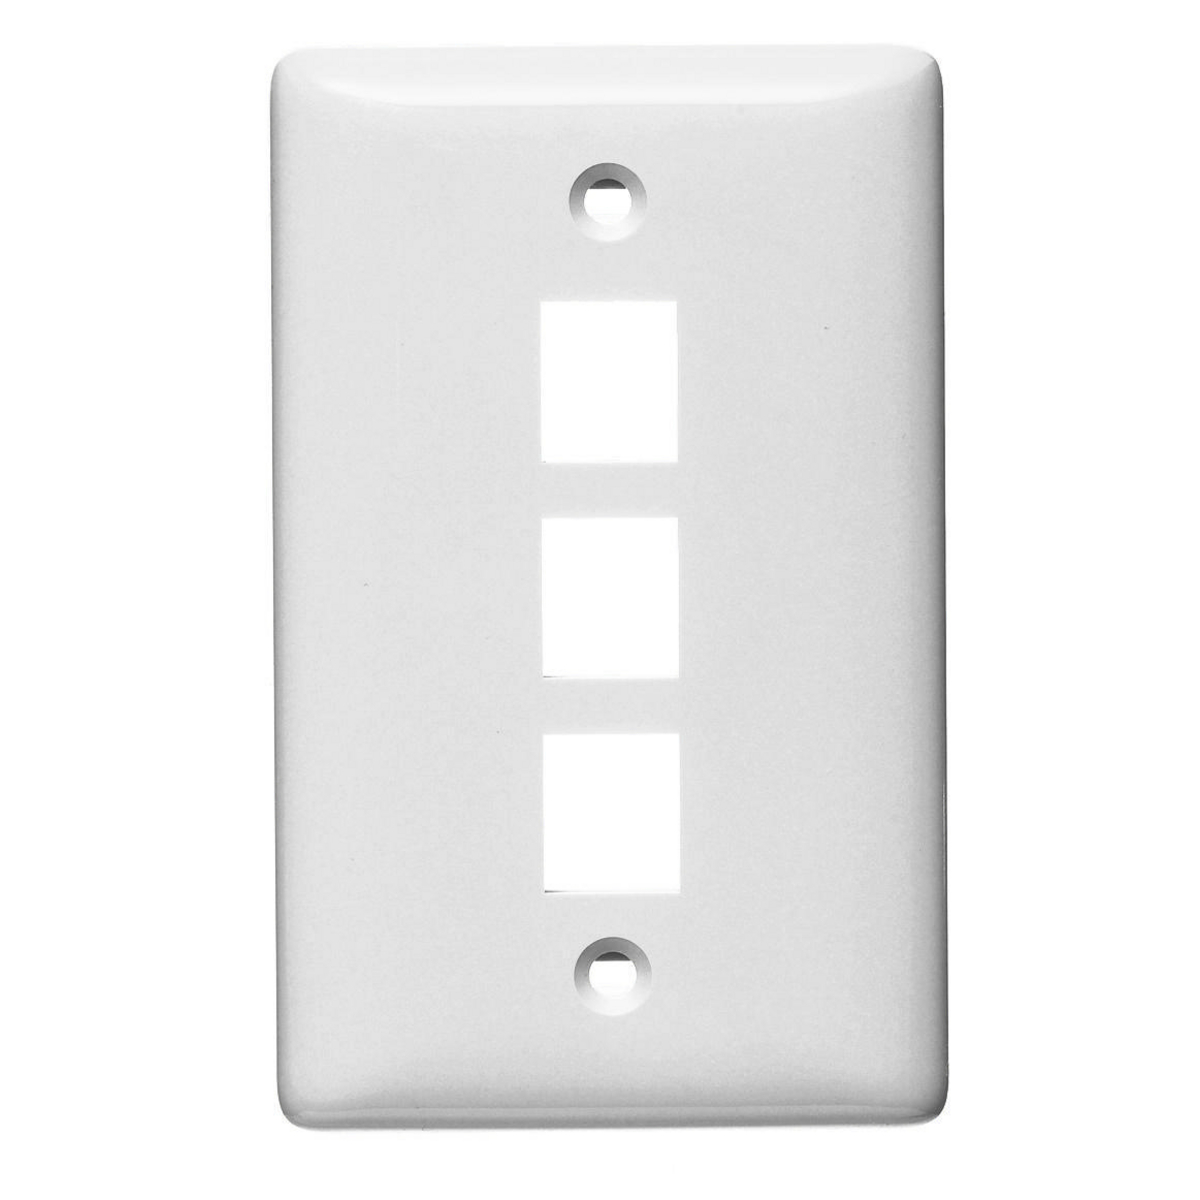 Hubbell NSP103W 1-Gang White Thermoplastic Medium 3-Port Data Communication Face Plate